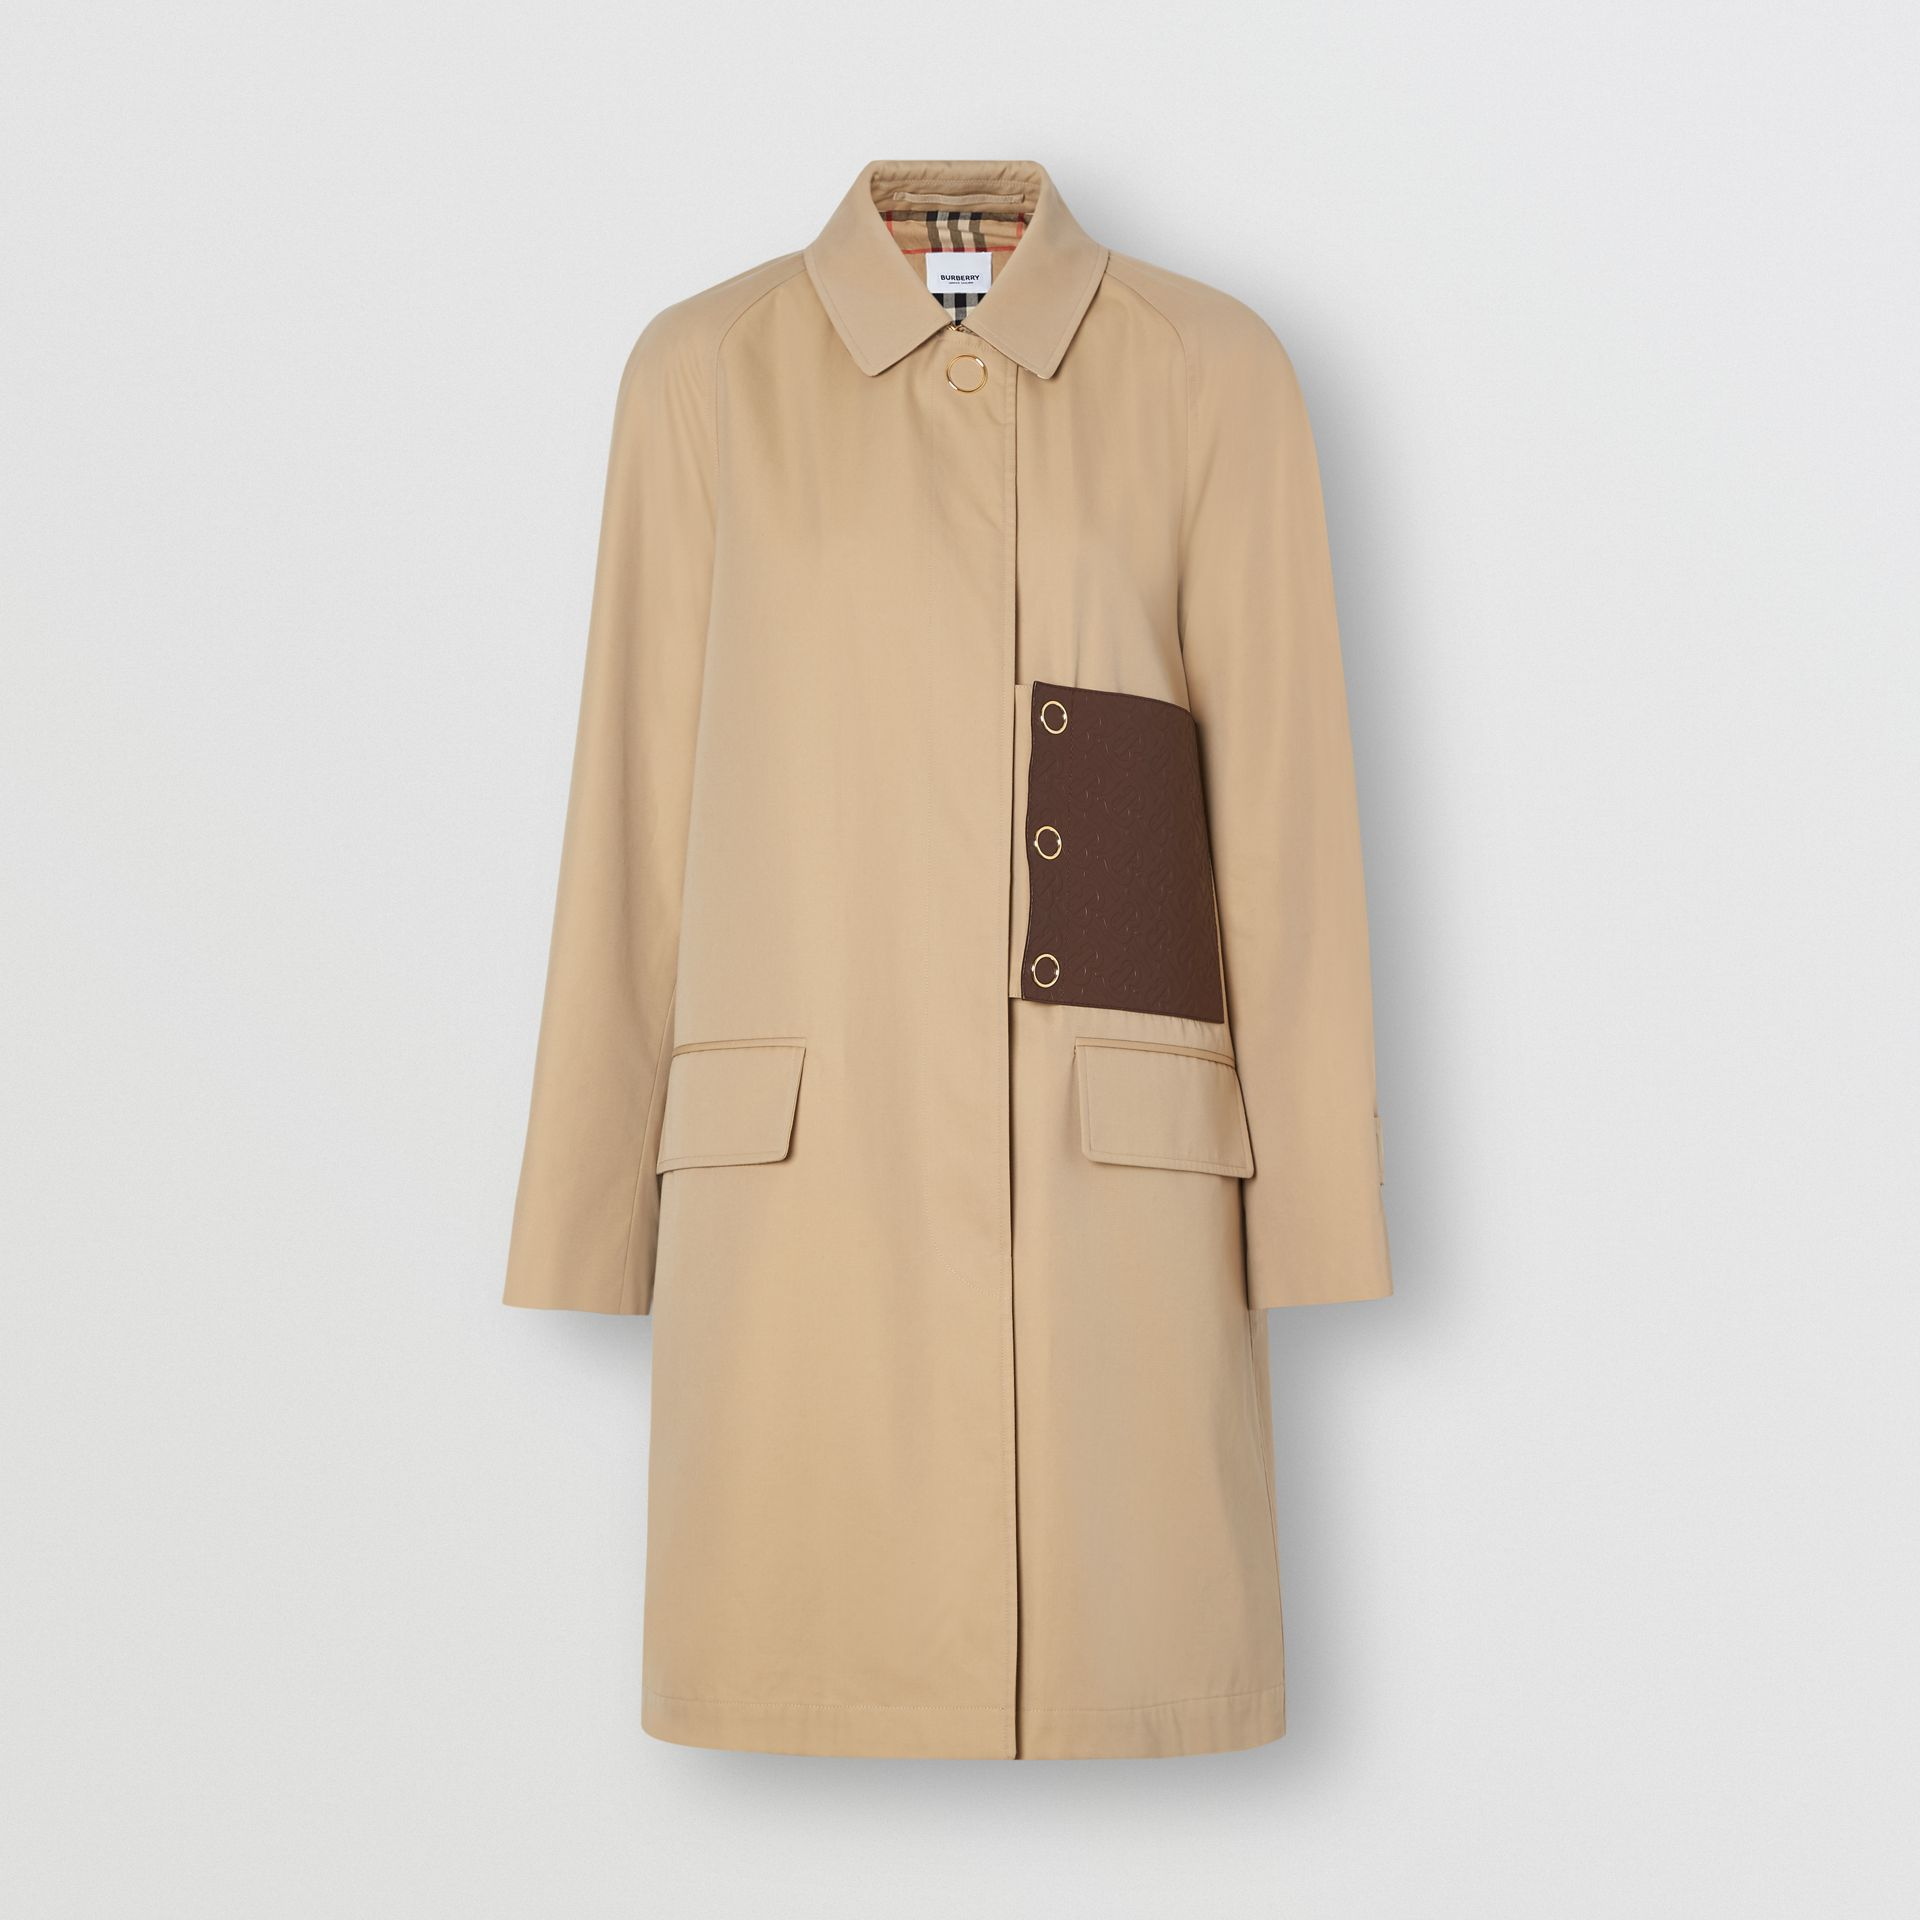 Monogram Leather Detail Cotton Gabardine Car Coat in Honey - Women | Burberry - gallery image 3